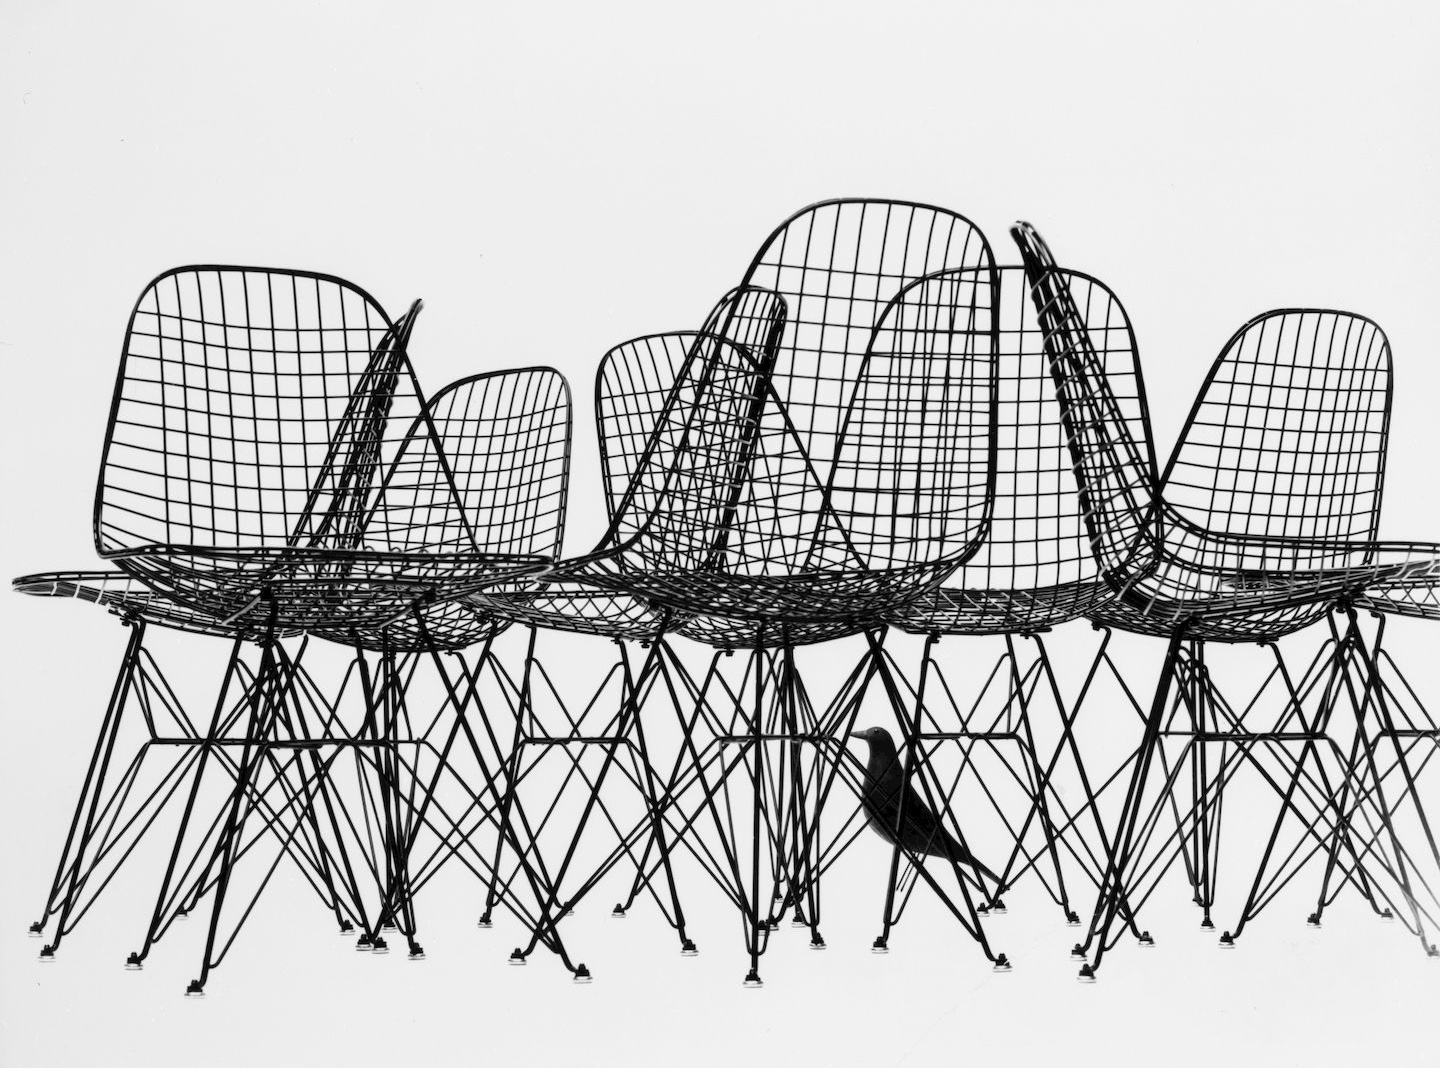 This famous image by Charles Eames shows the bird's silhouettesetagainst a geometric grid of Eames Wire Chairs. Image© 2005 Eames Office, LLC via Vitra.